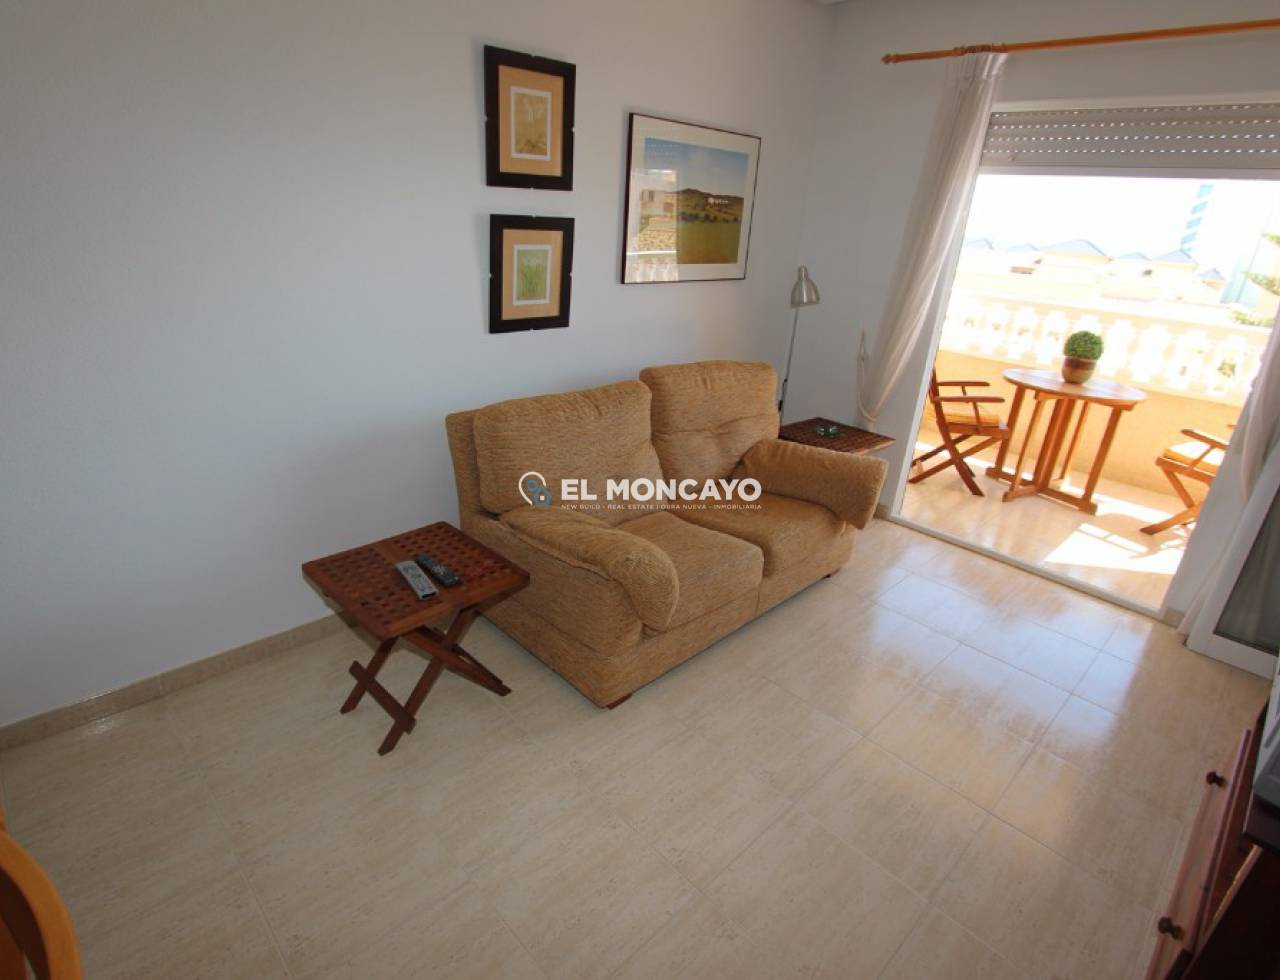 Appartement te koop in Campomar - Guardamar del Segura (8)